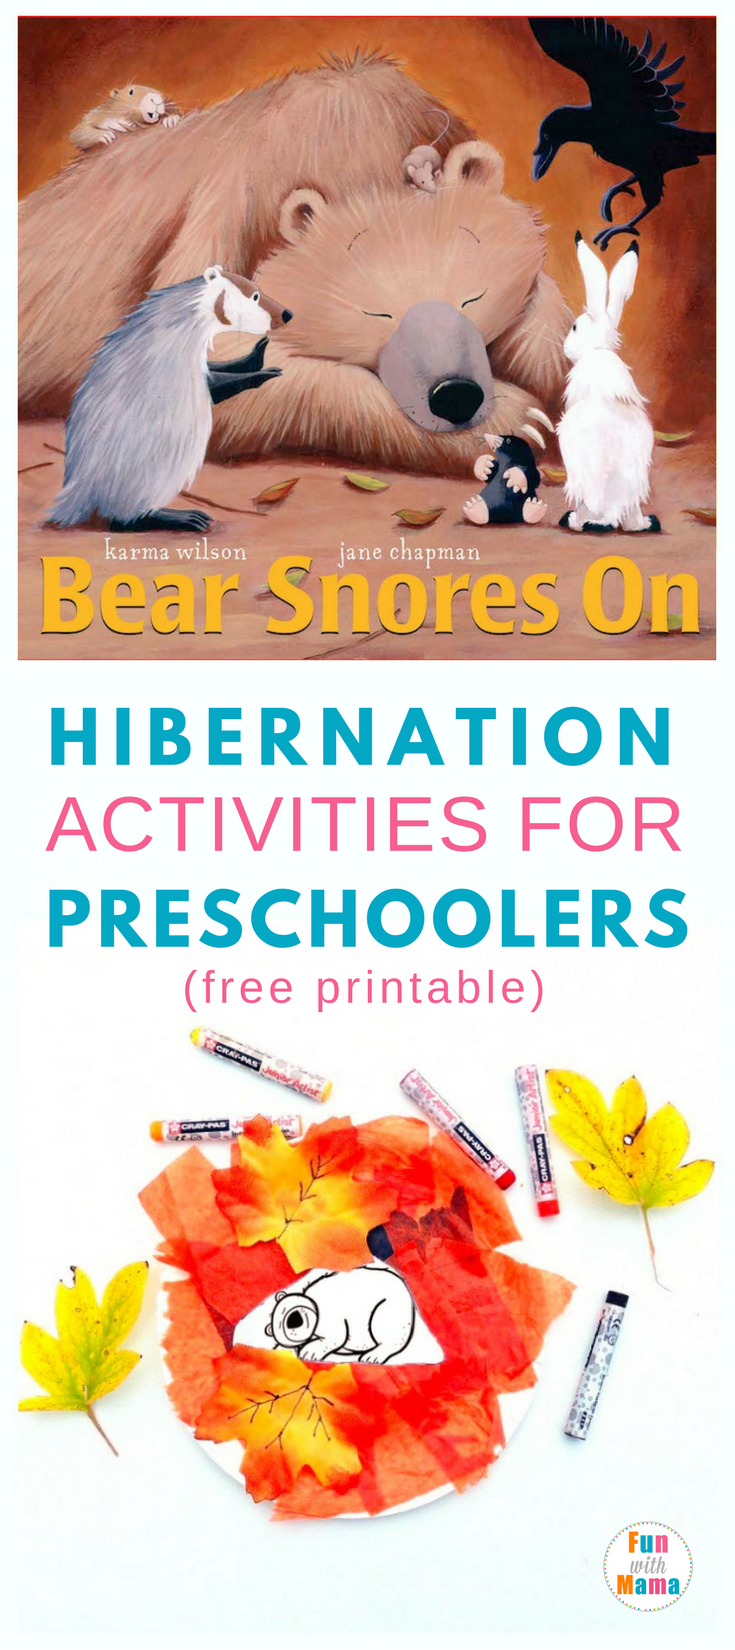 Hibernation activities for preschoolers fun with mama for Hibernation crafts for preschool